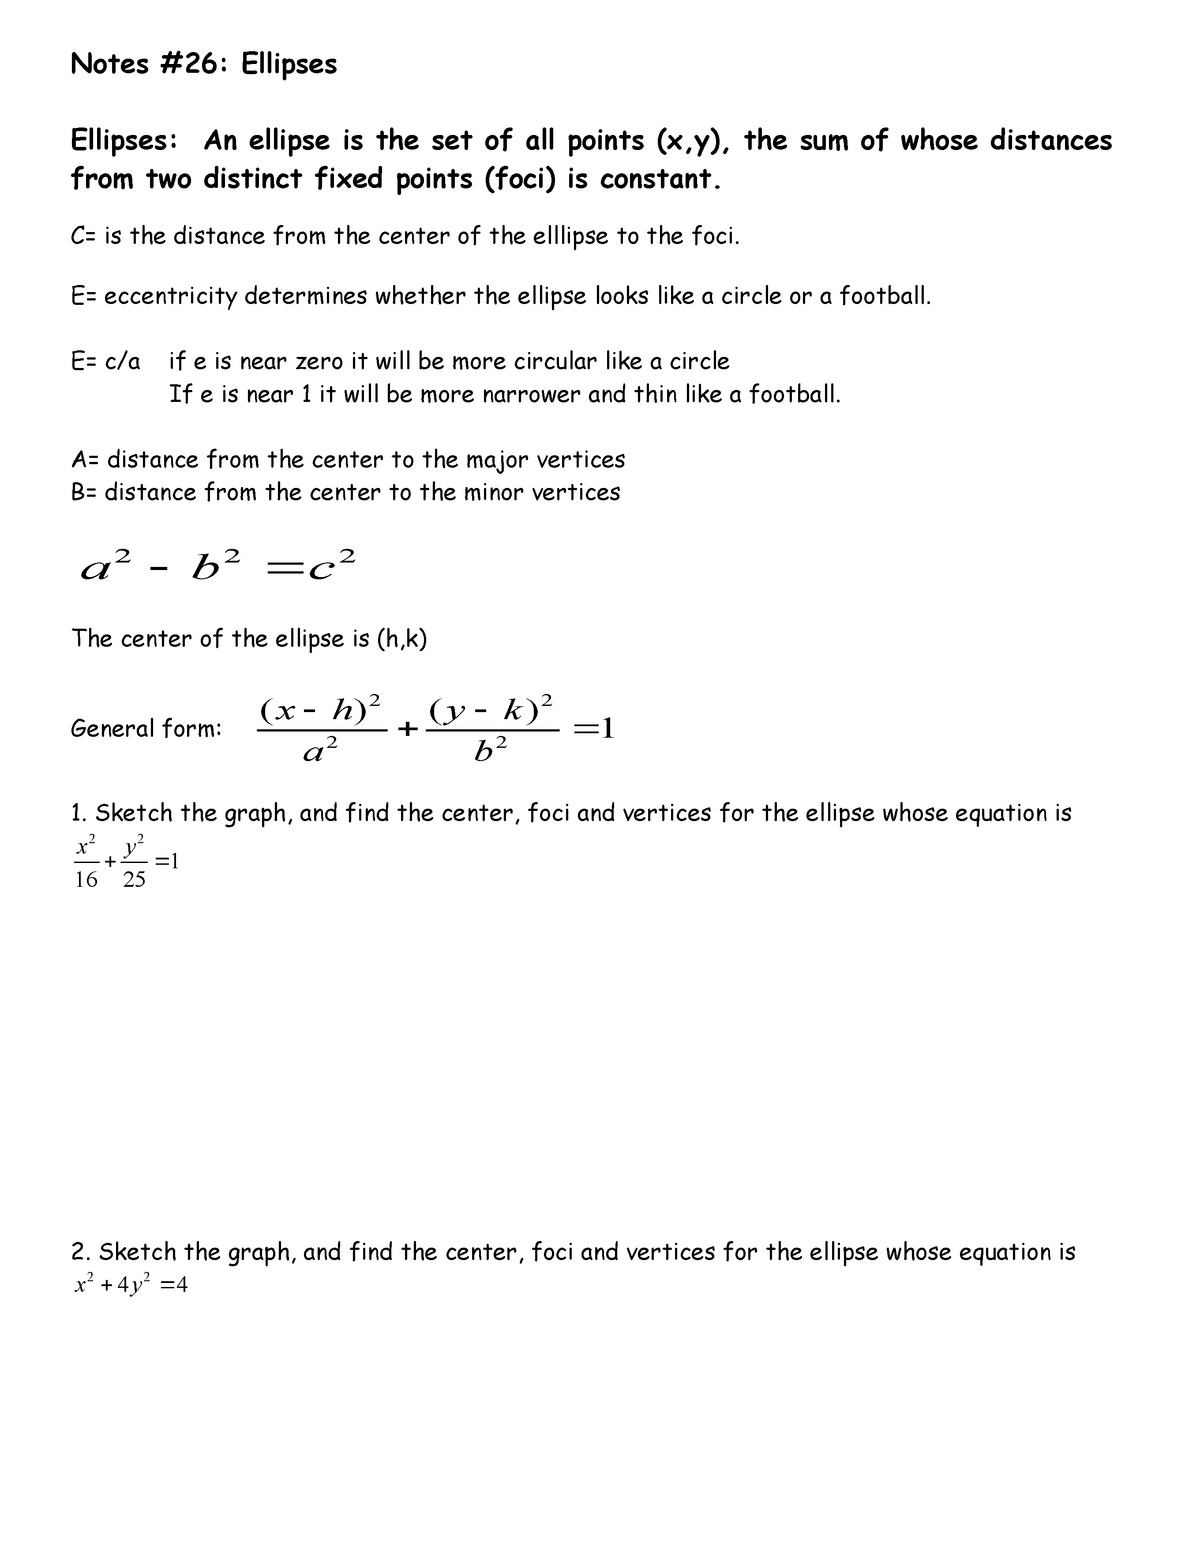 Notes #26-Ellipses and Hyperbolas - MATH 20200: Calculus II